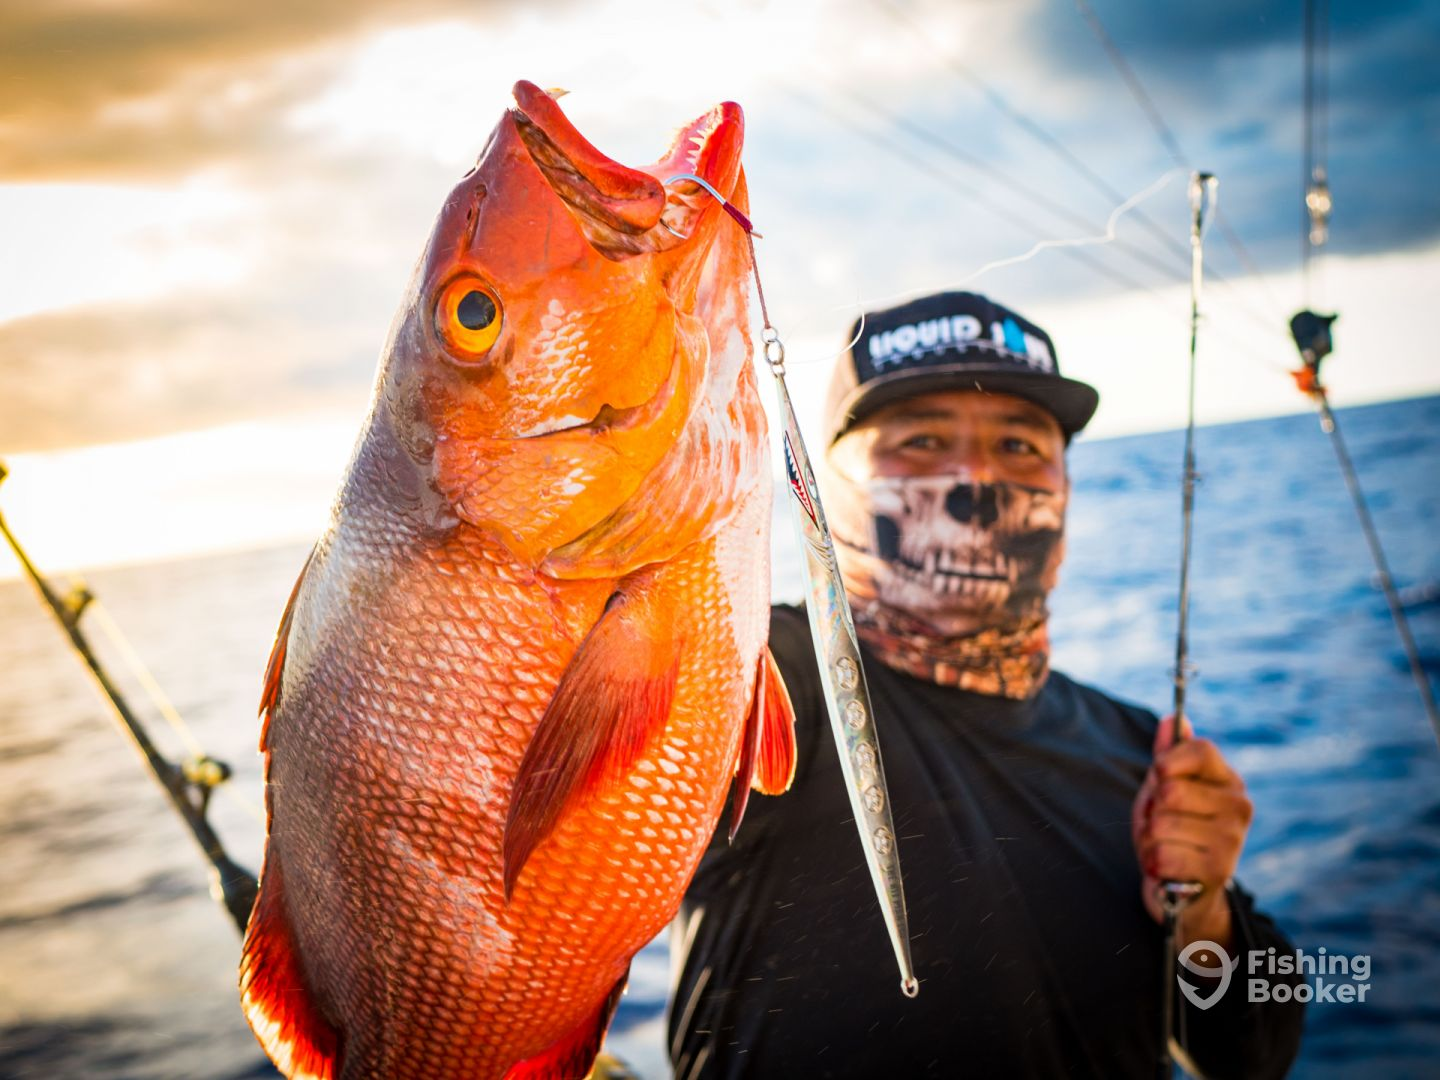 Captain barn and a red snapper